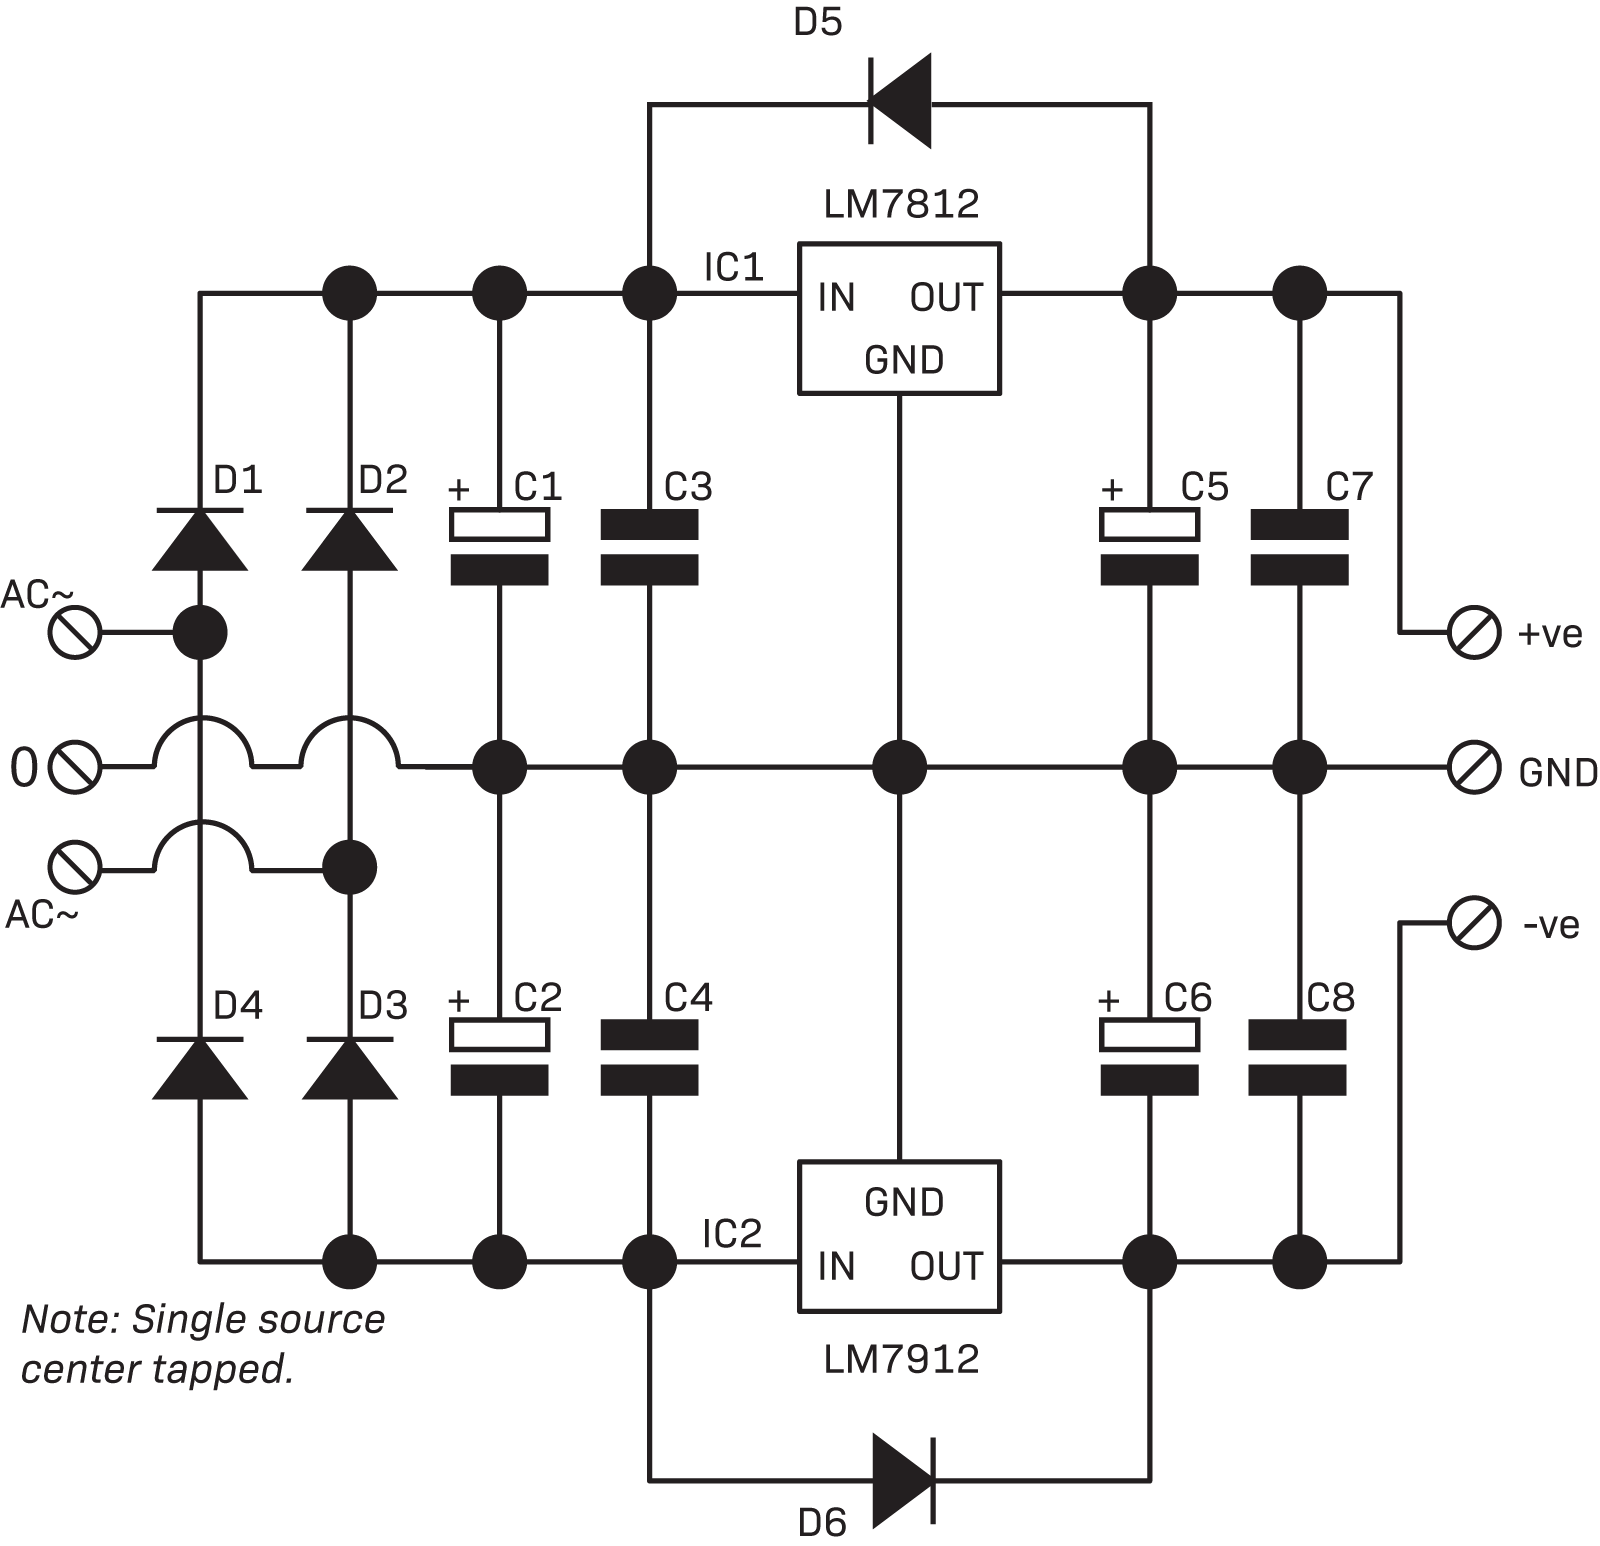 hight resolution of power supplies connected together 2 circuit is useful for op amps and devices requiring 12vdc